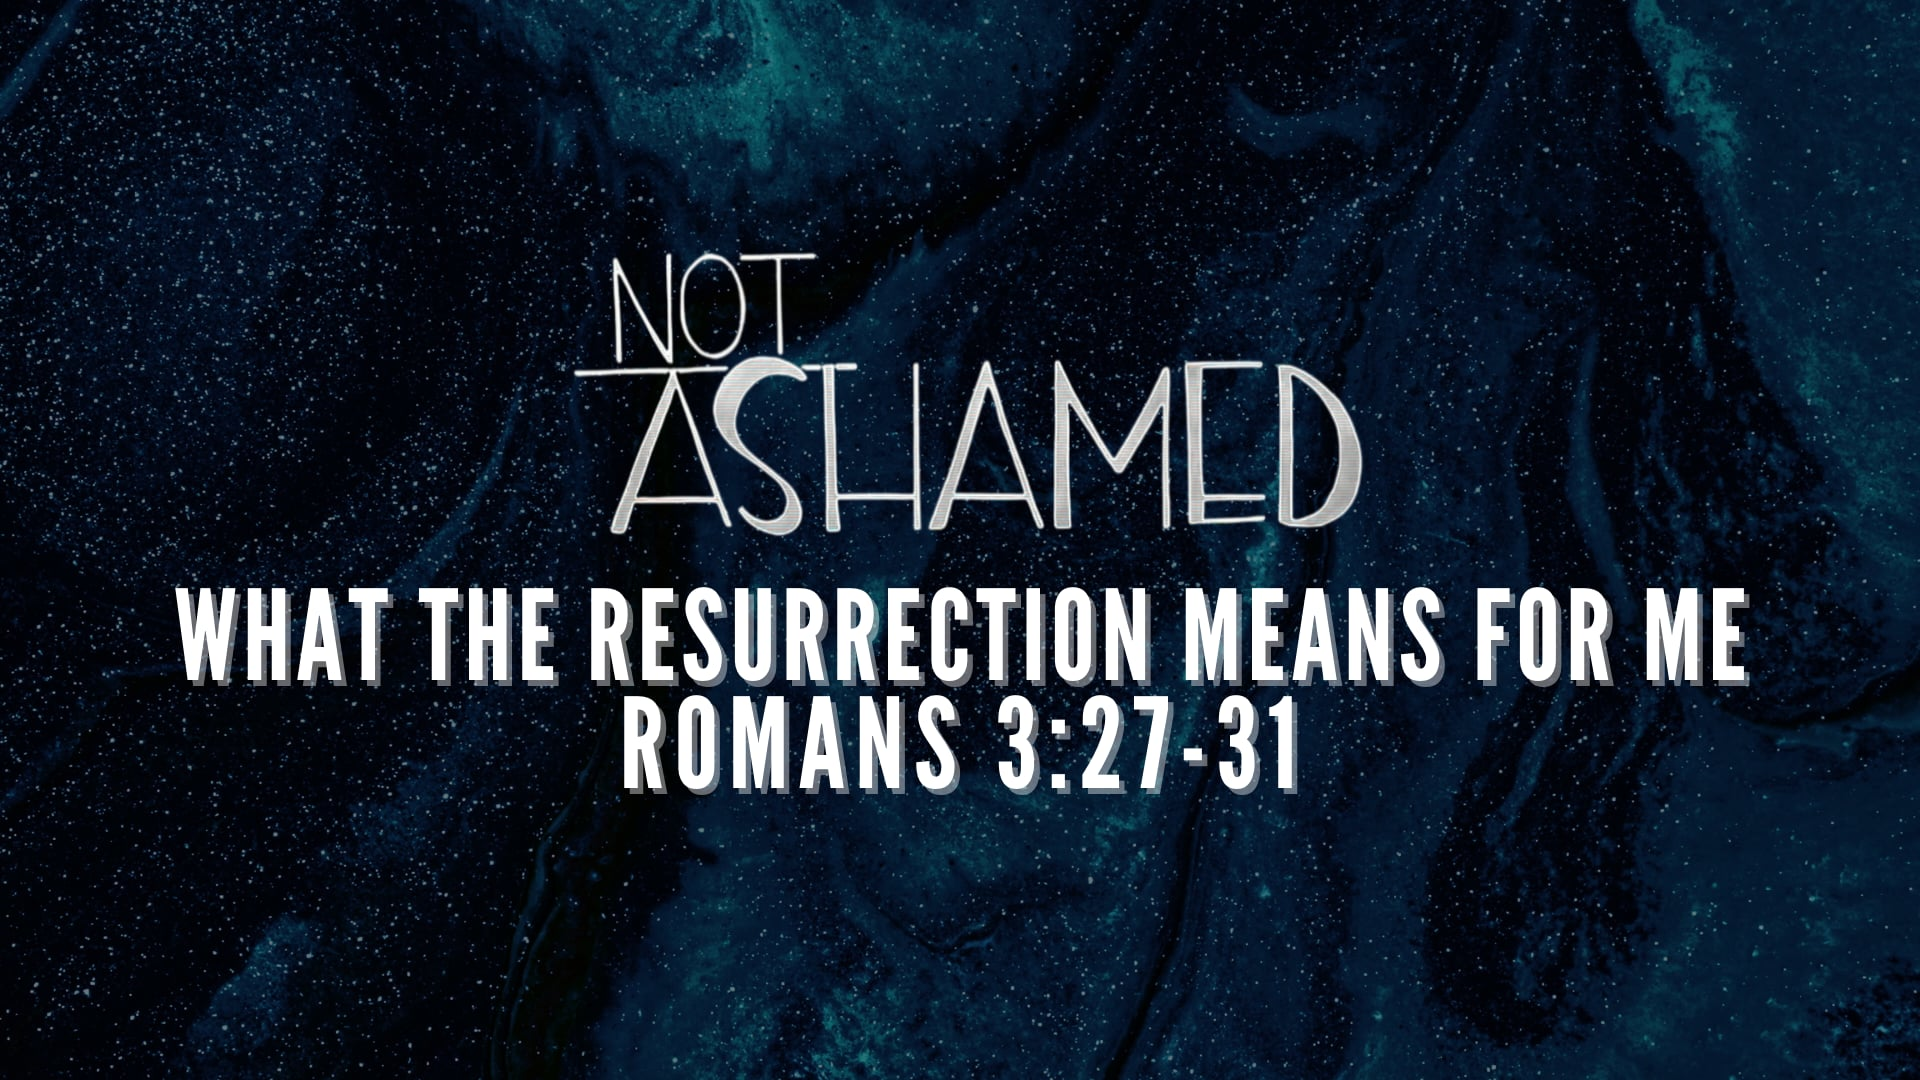 What the Resurrection means for me - April 4, 2021